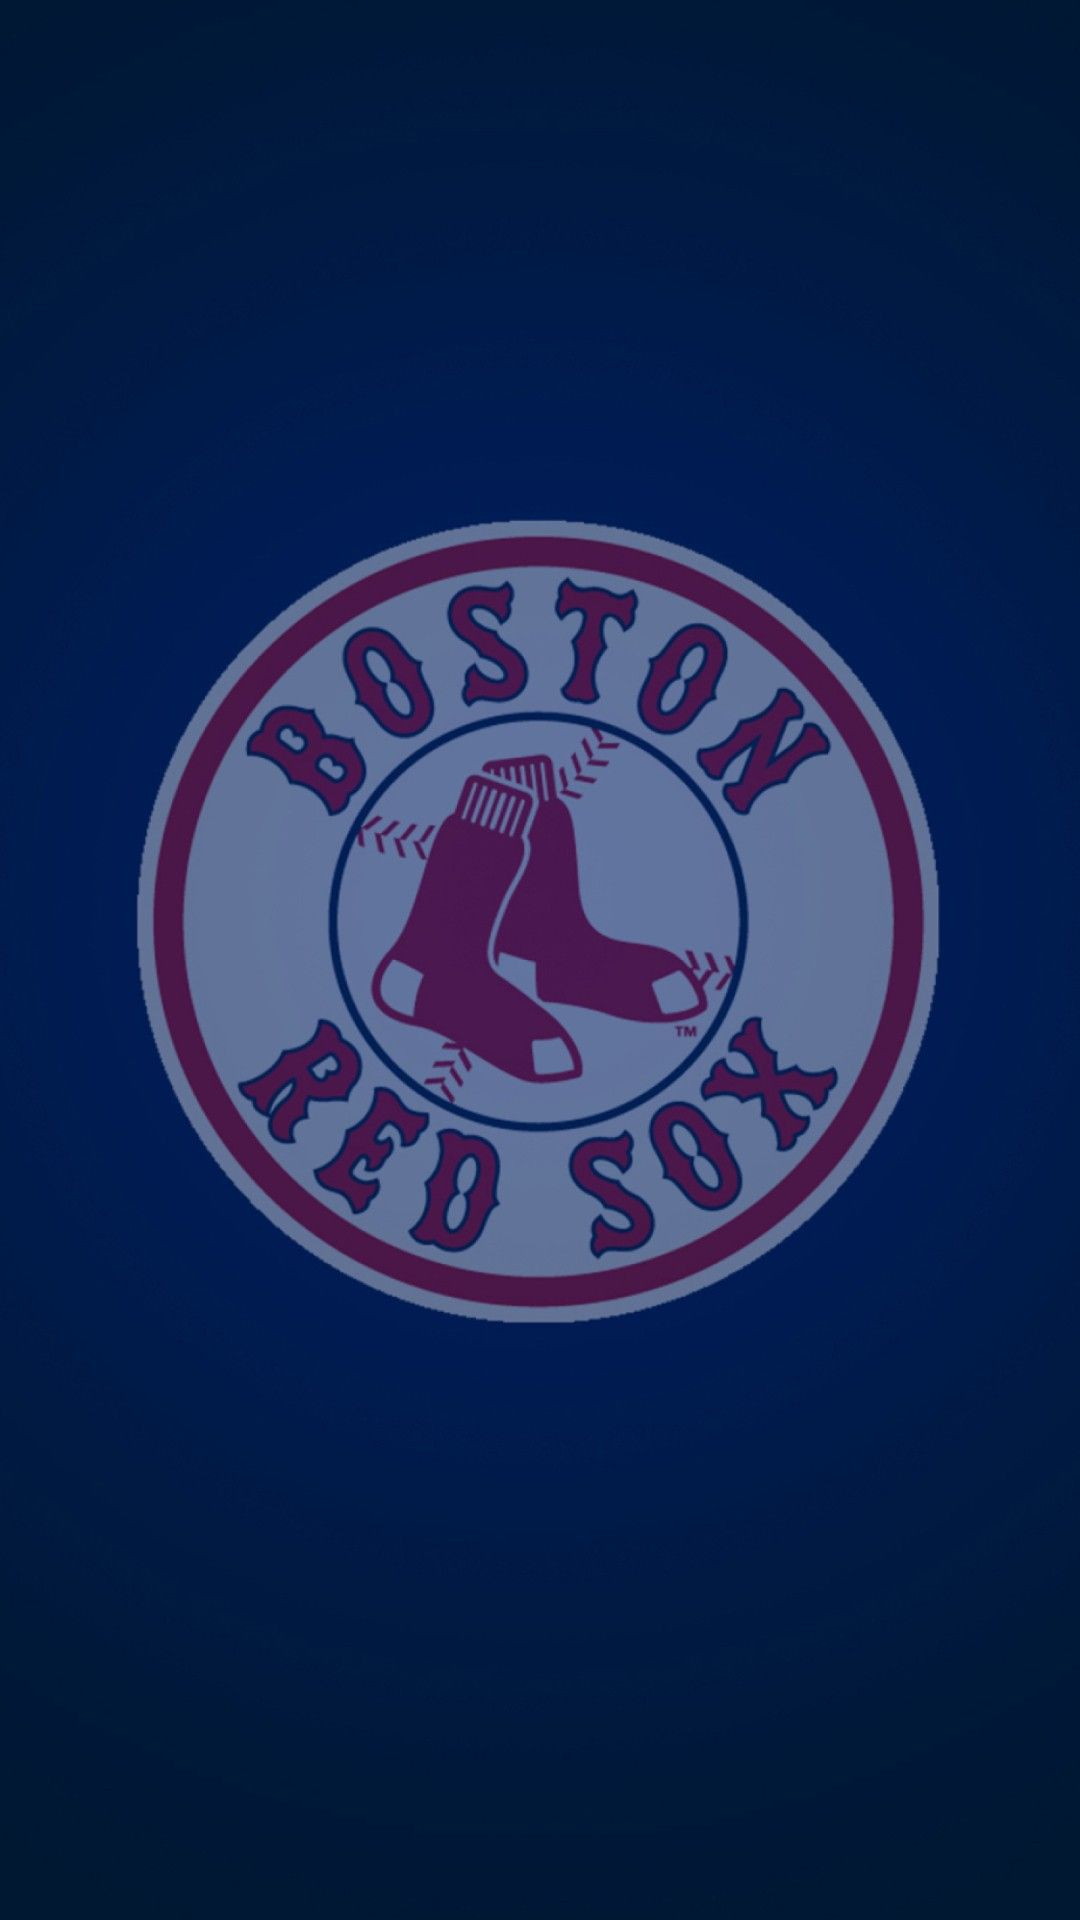 Pin On Wallpaper Boston red sox iphone 11 wallpaper